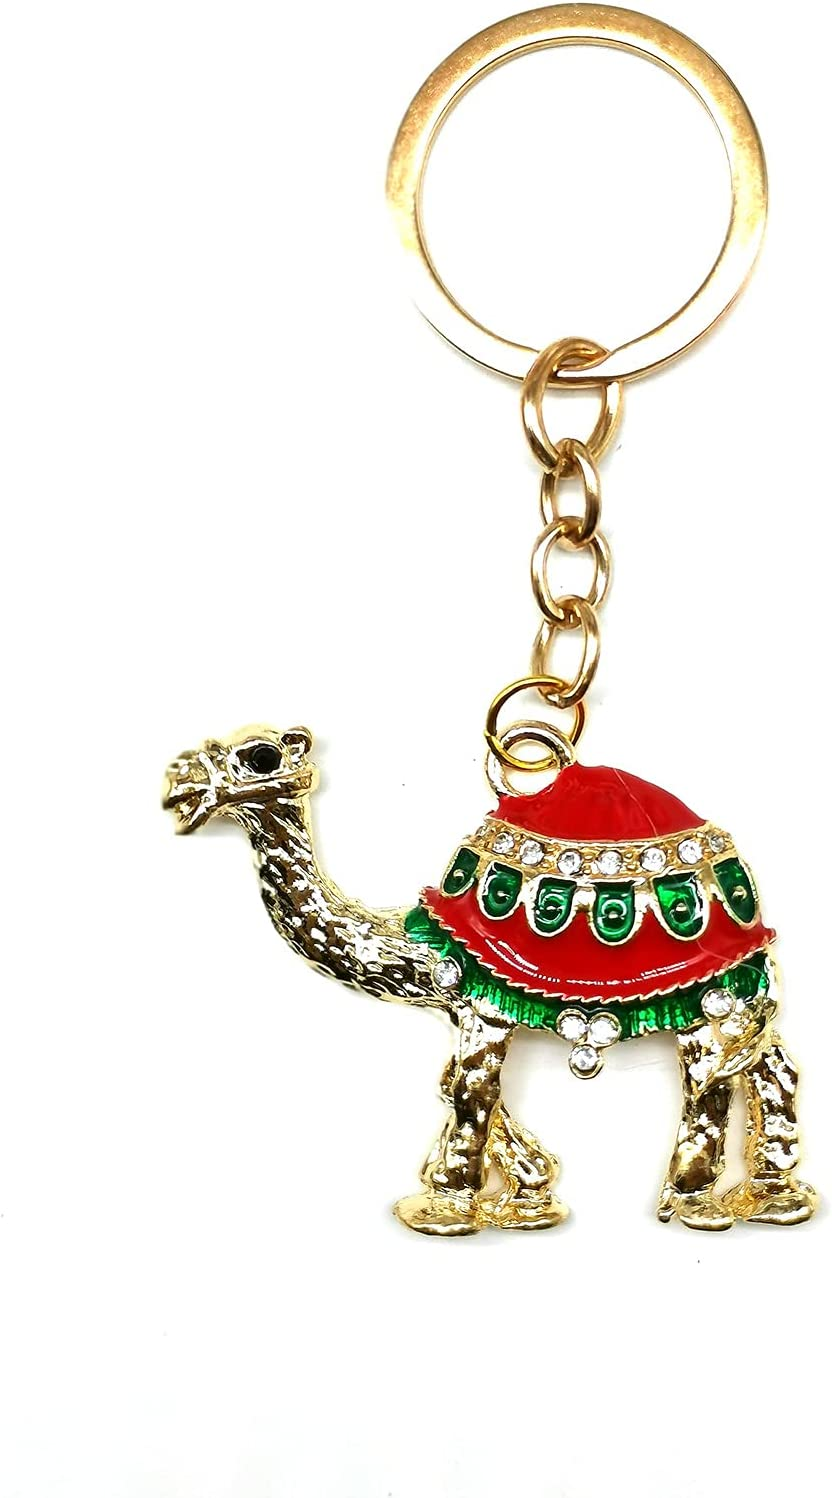 Blue Evil Eye Lucky Camel Keychain Hanging Car Rear View Mirror Home Decor Amulet Pendant Accessories